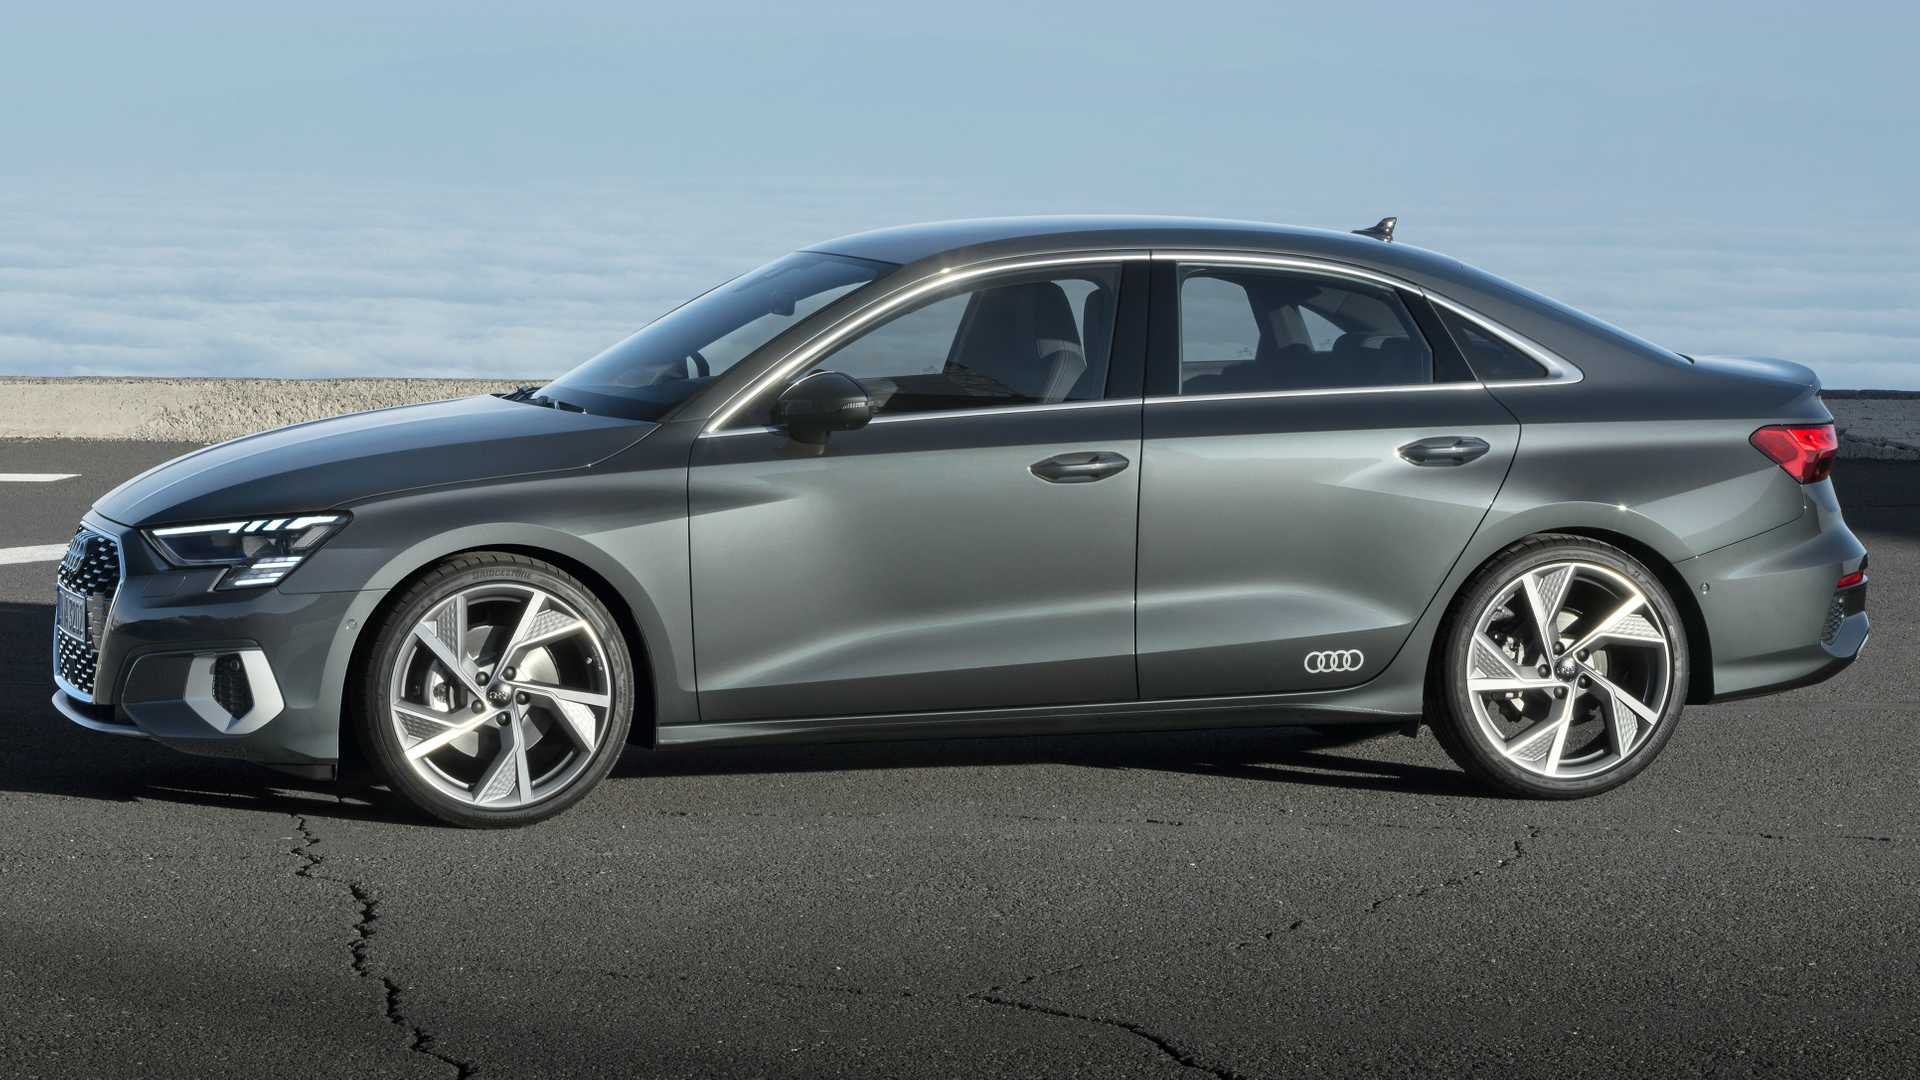 2021 Audi A3 Sedan Videos Show The Luxury Compact In Great Detail